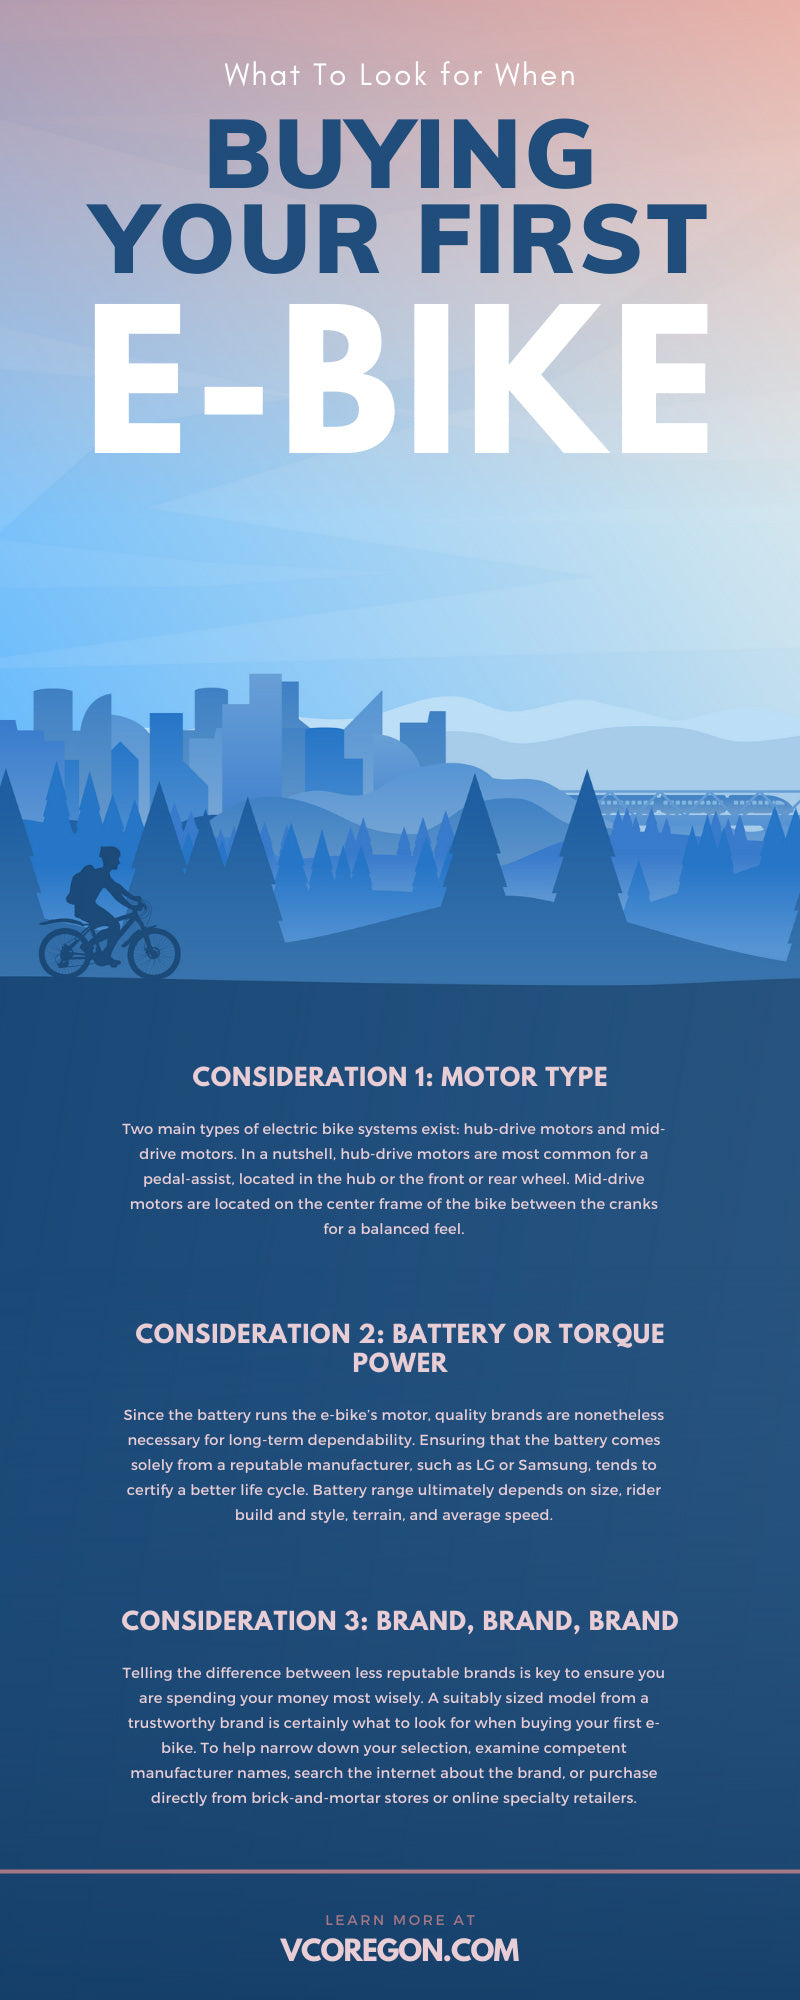 What To Look for When Buying Your First E-Bike